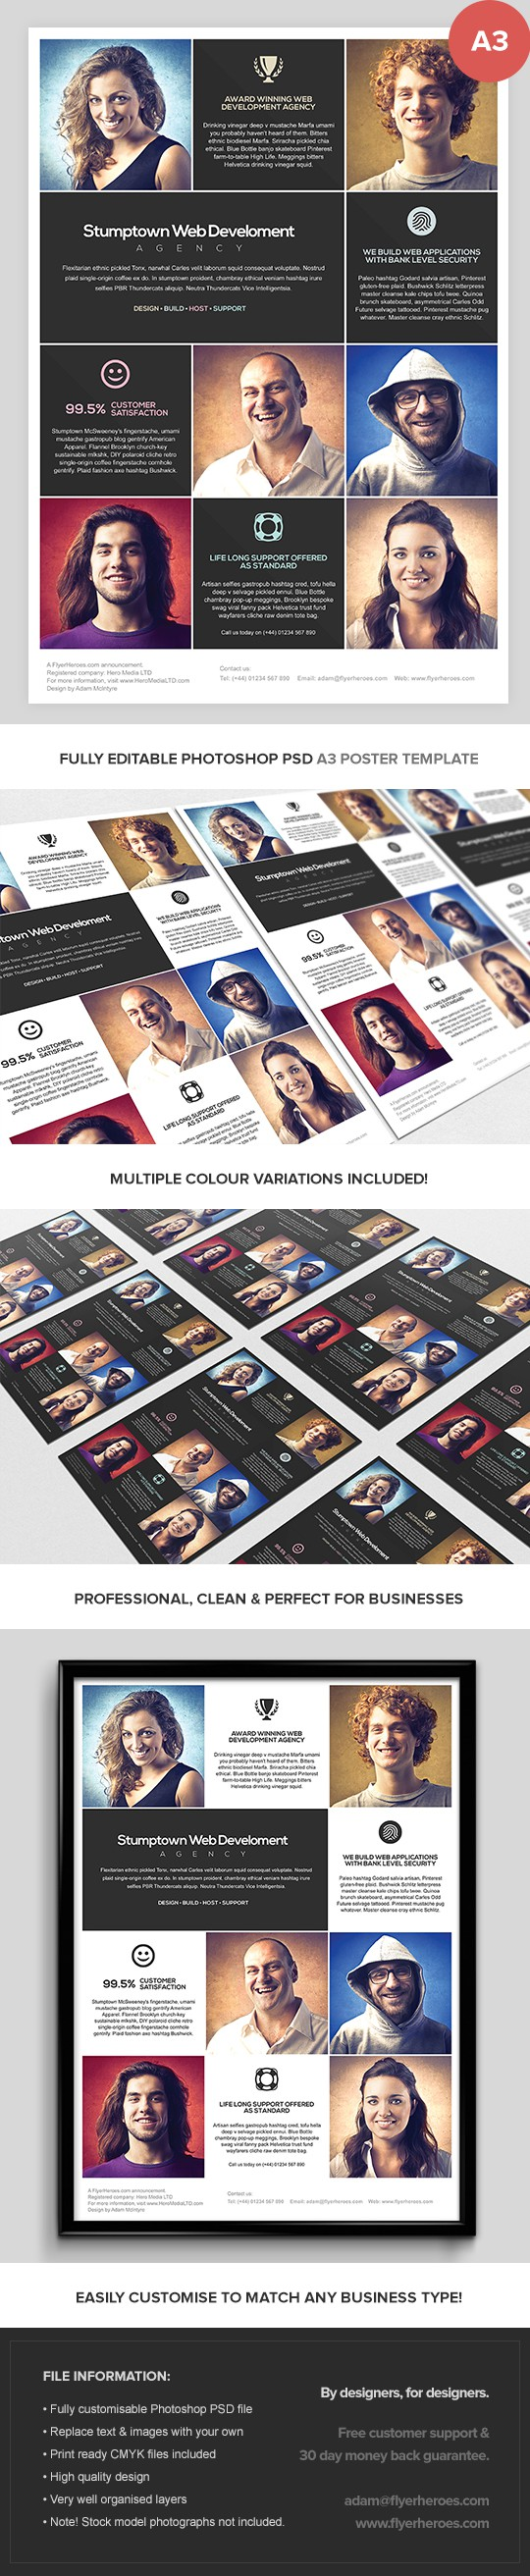 Multipurpose A3 Business Poster Template